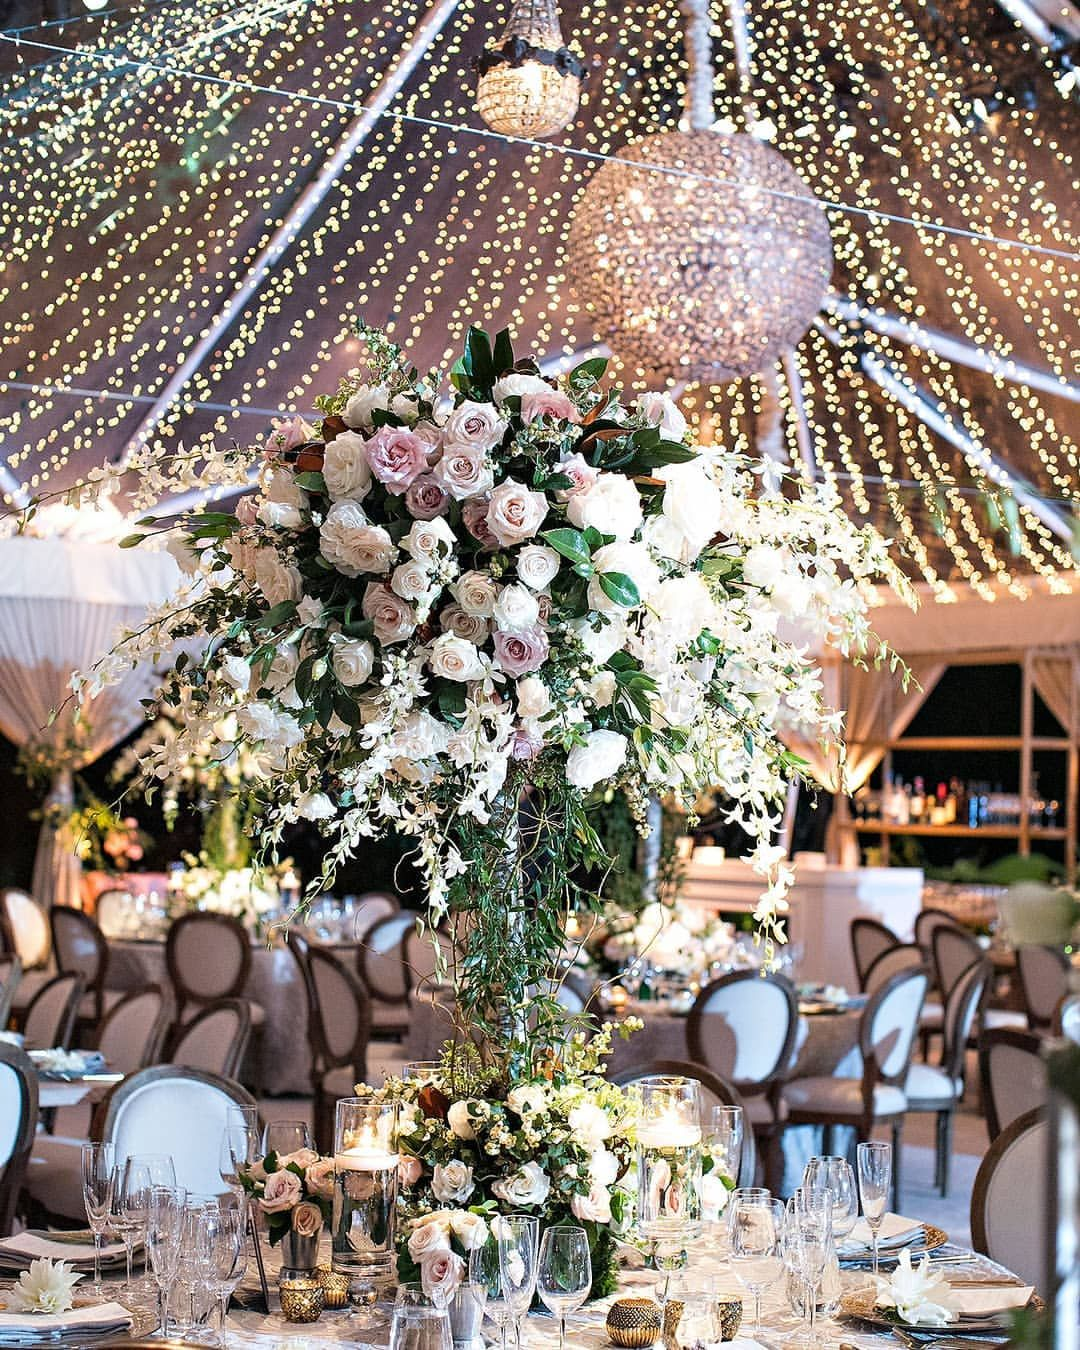 Guests Dined At Beautifully Designed Tablescapes By